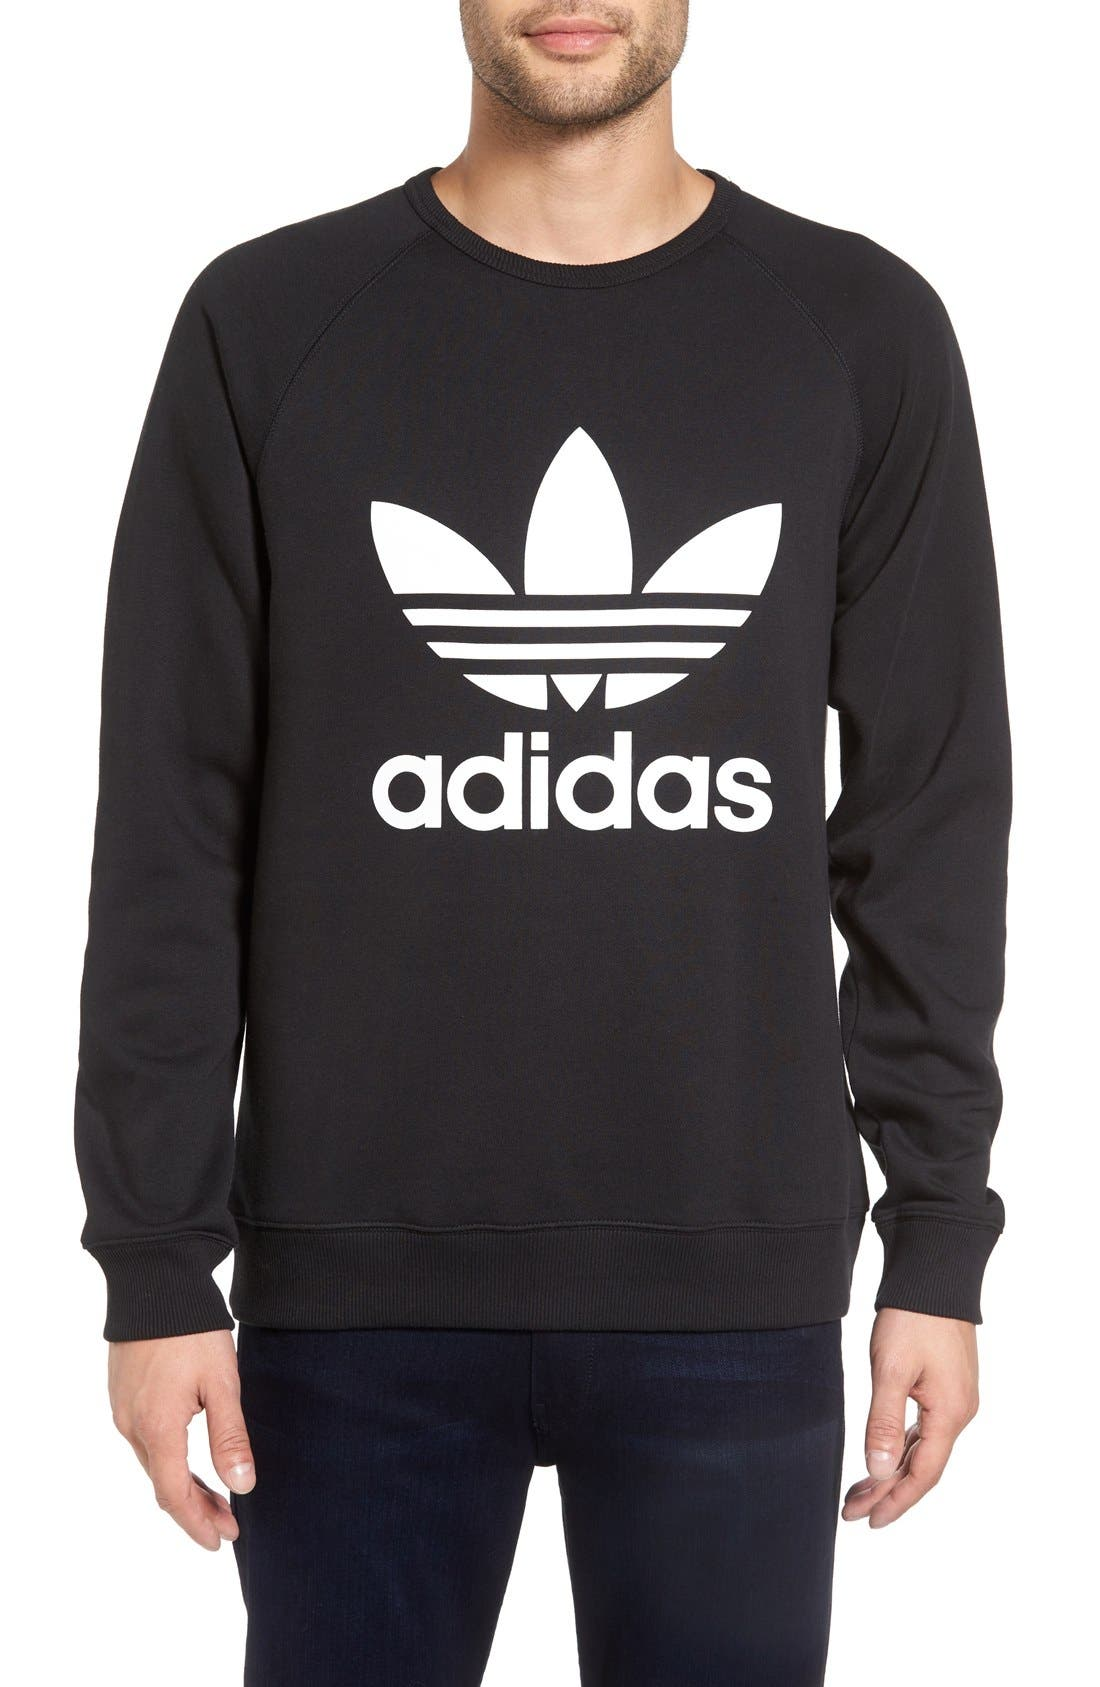 adidas Originals Slim Fit Trefoil Logo Crewneck Sweatshirt